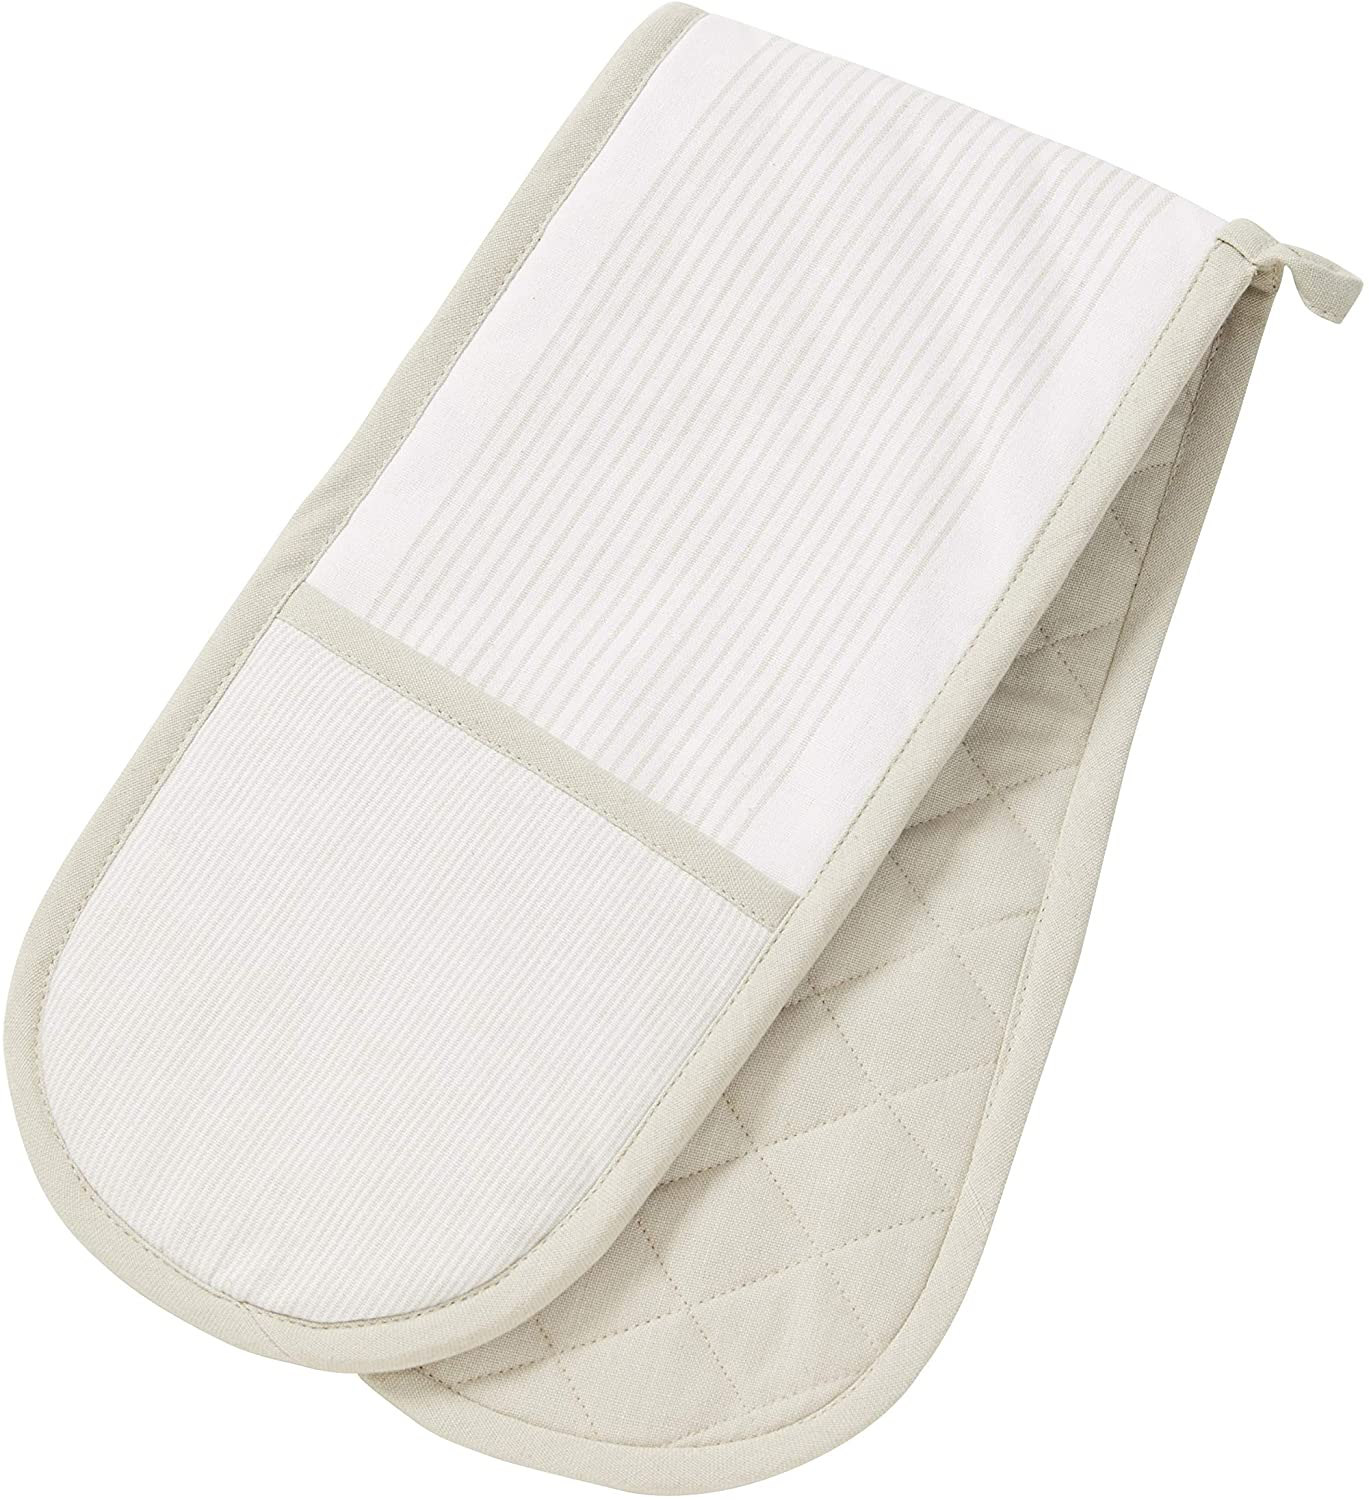 Essentials Parker Double Oven Glove White and Taupe